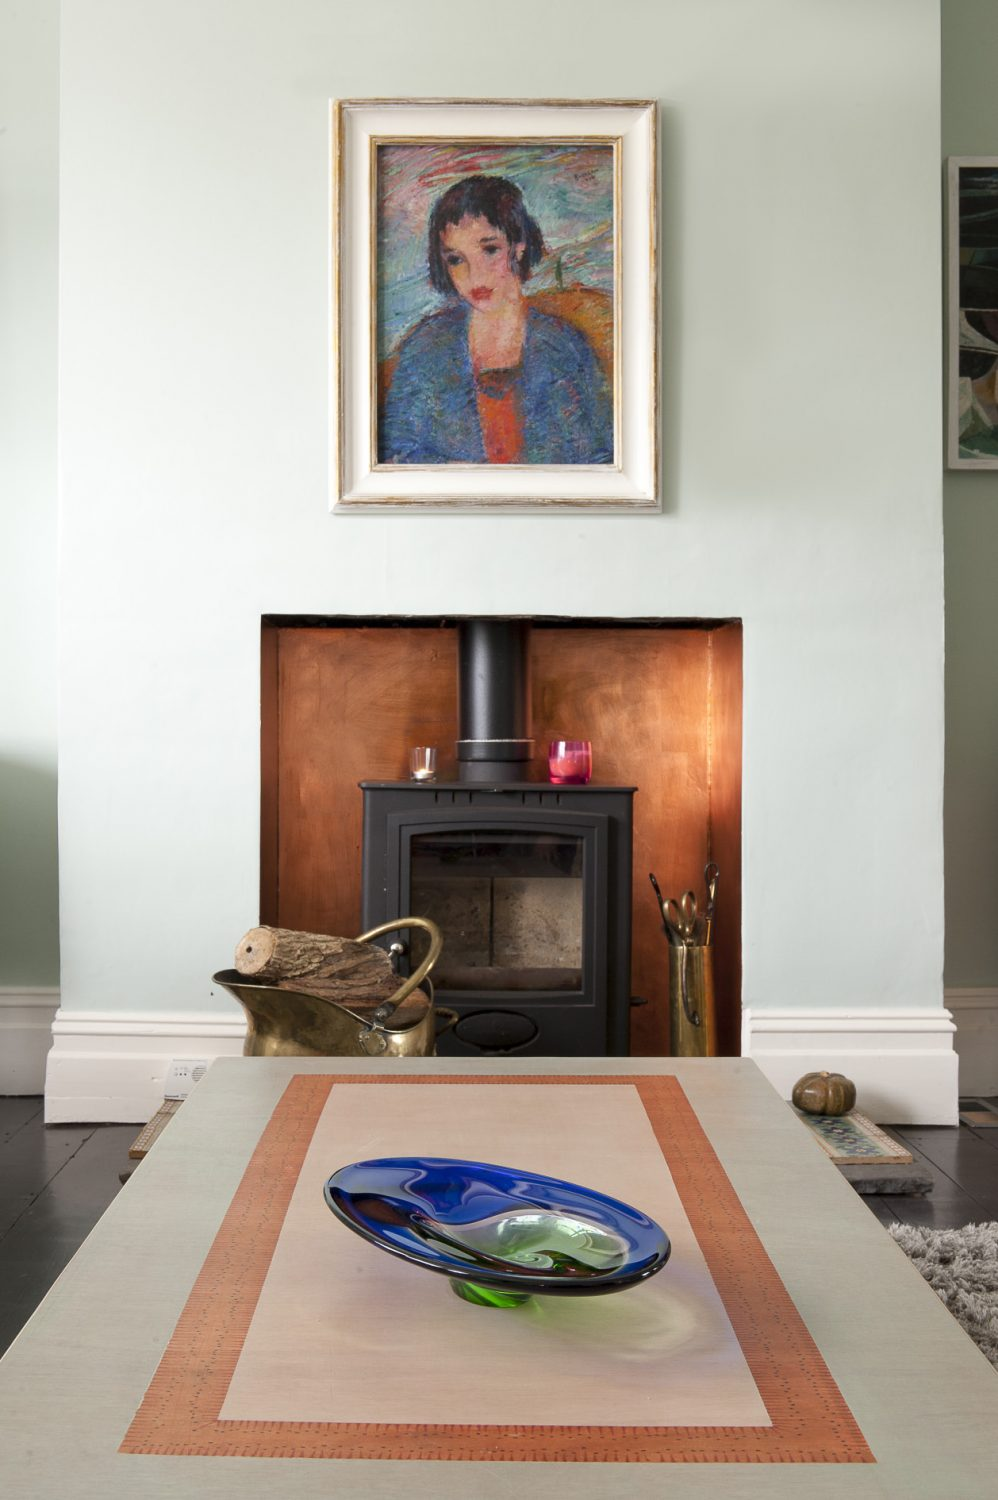 The painting over the woodburner is by Oskar Barblain